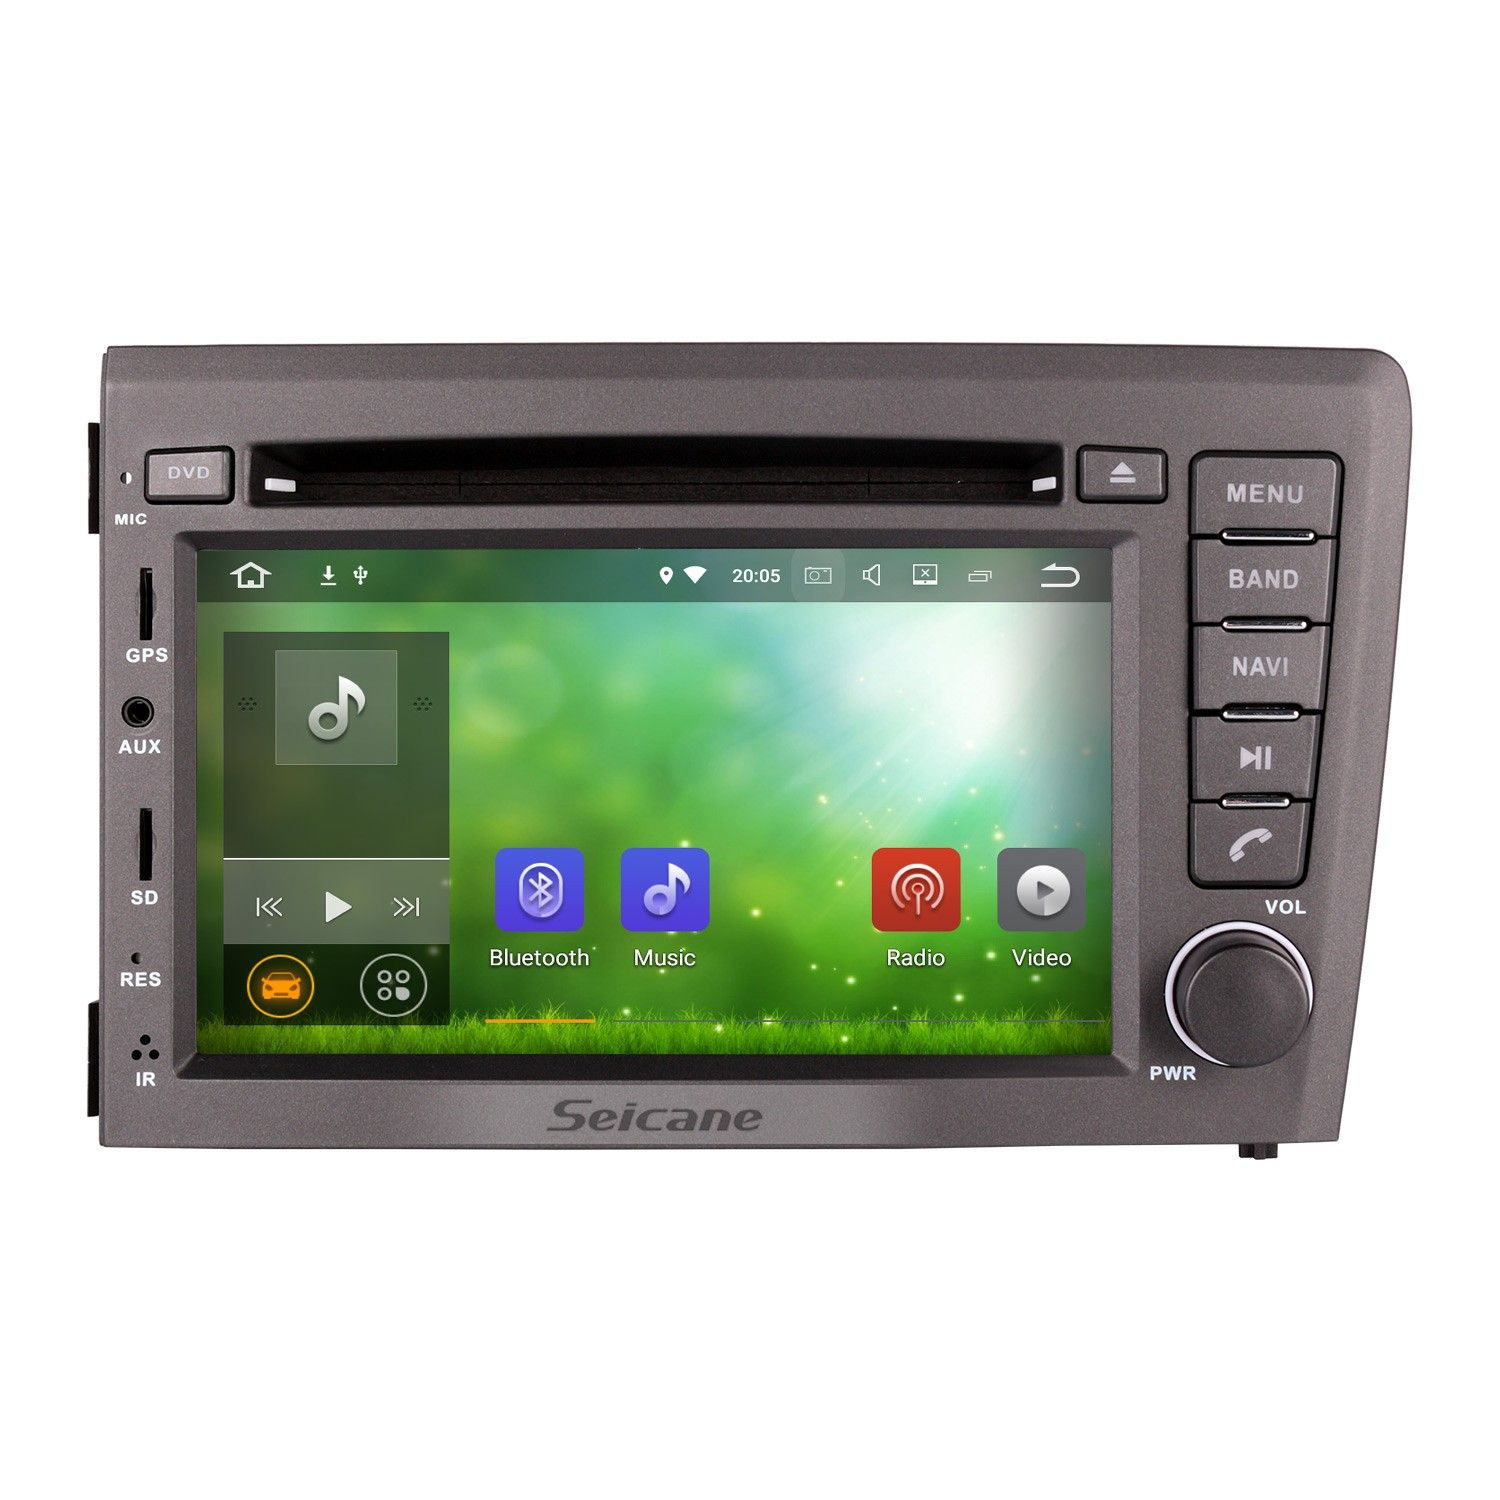 seicane 2001 2004 volvo s60 v70 android 7 1 hd touch screen dvd player radio bluetooth [ 1500 x 1500 Pixel ]